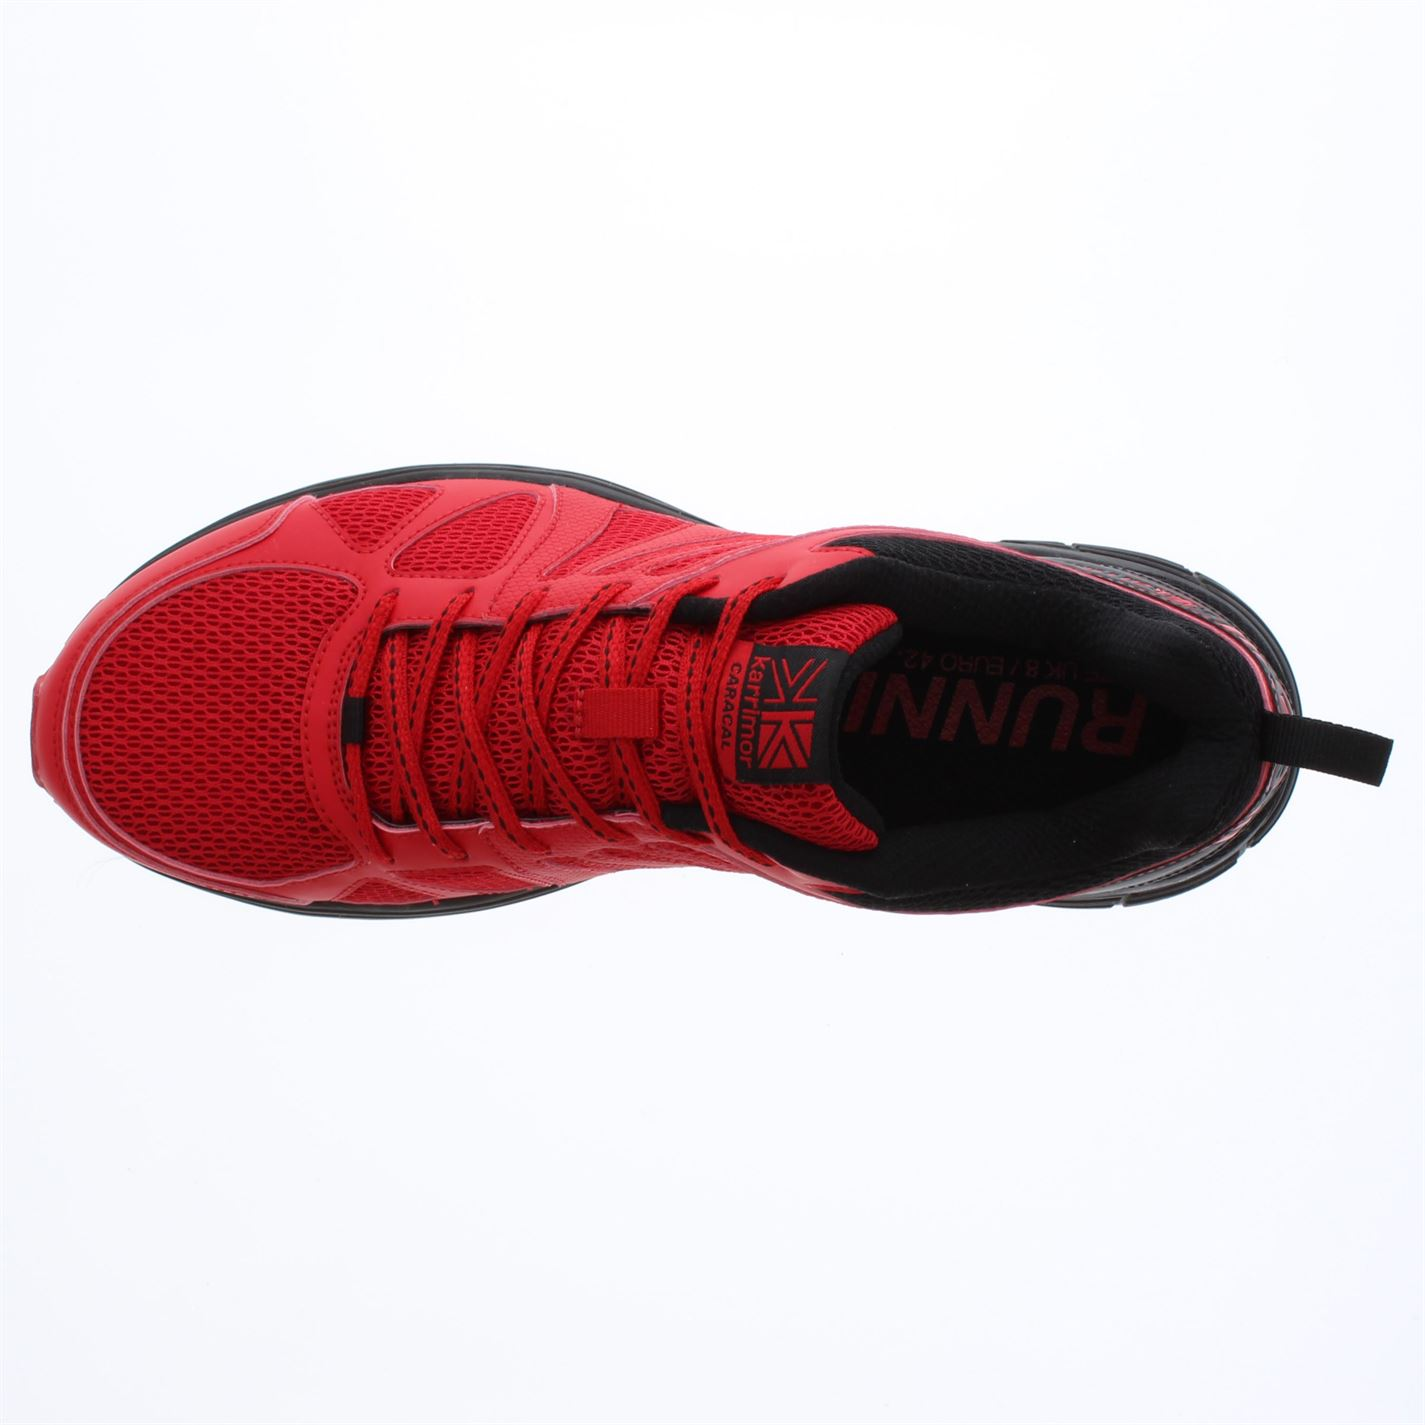 Karrimor-Men-Caracal-Trail-Running-Shoes-Trainers-Lace-Up-Breathable-Mesh-Panels thumbnail 13